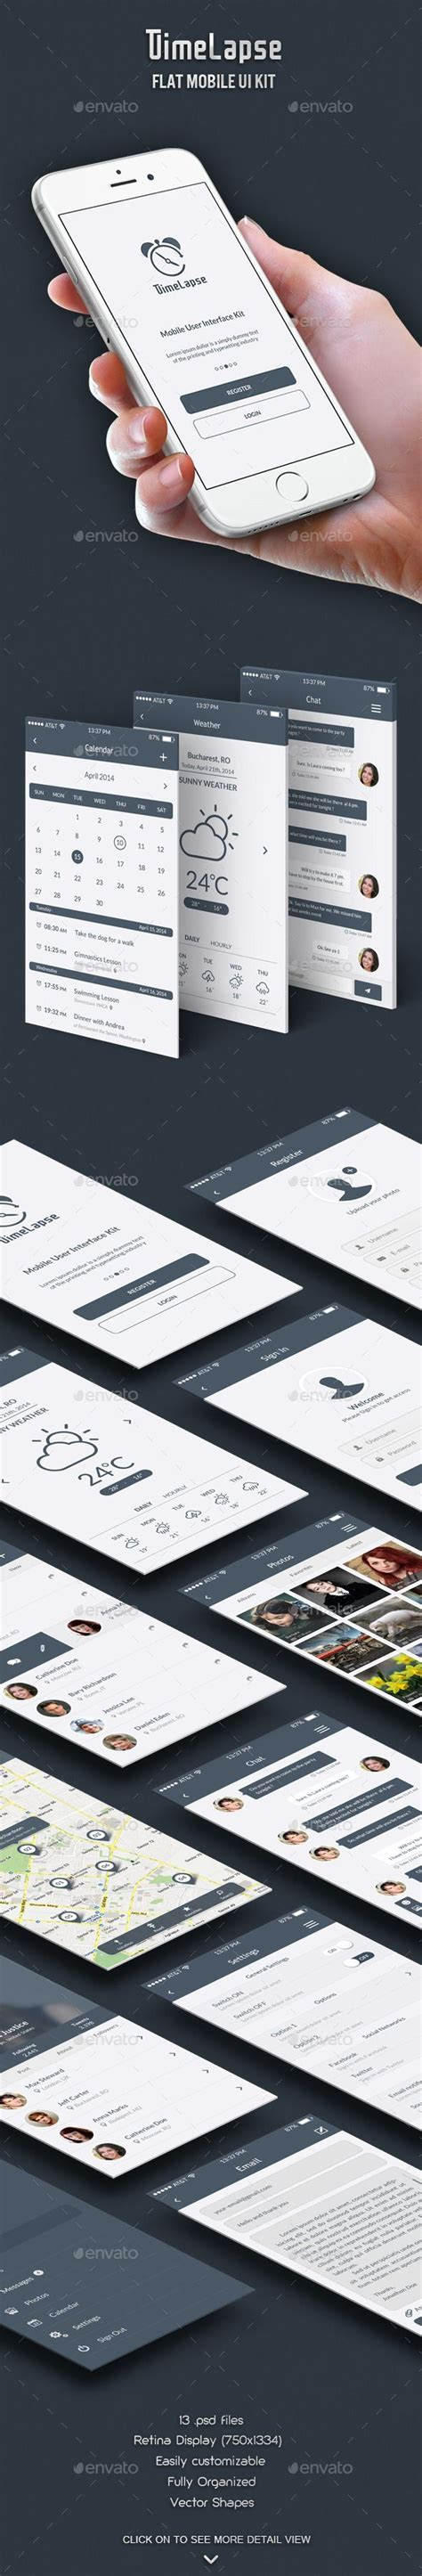 Themeforest Gravity Material Mobile App Template by 1000 Ideas About Mobile Ui On Pinterest Ui Design App